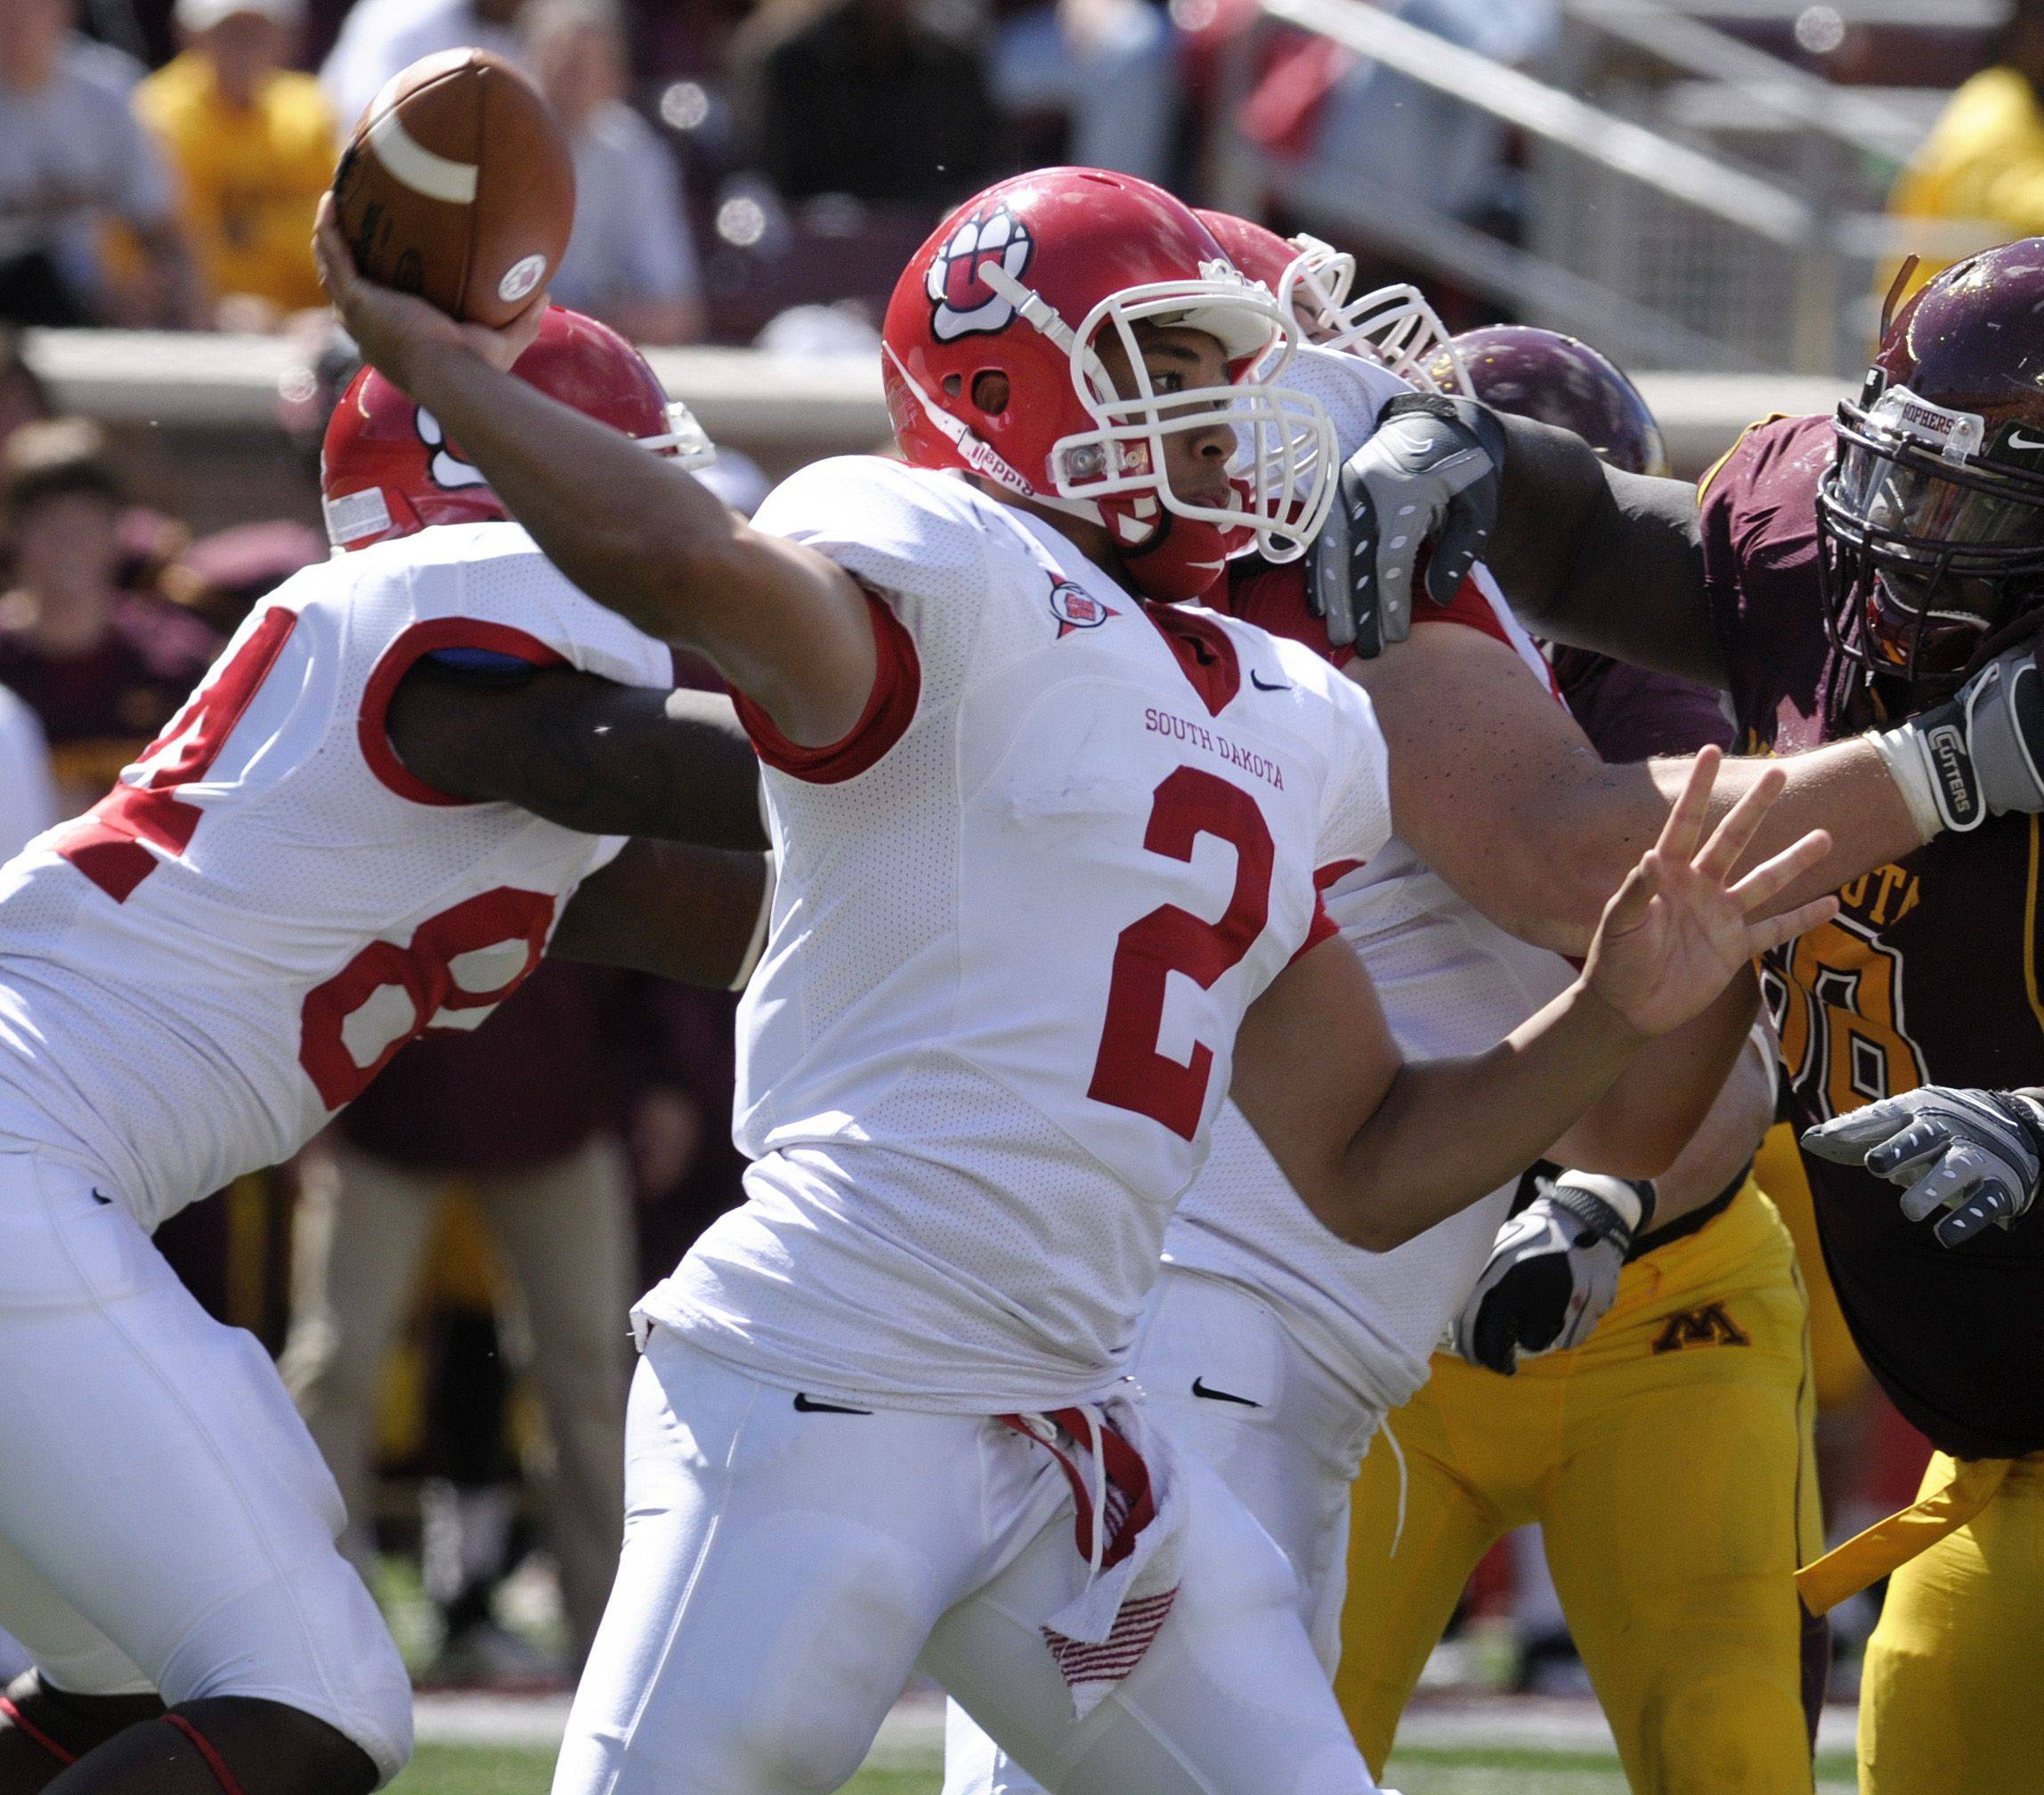 St. Viator graduate Dante Warren, shown here leading South Dakota to an upset of Minnesota in the 2010 season, has been invited to participate in the second annual FCS Senior Scout Bowl on Saturday in Myrtle Beach, S.C.